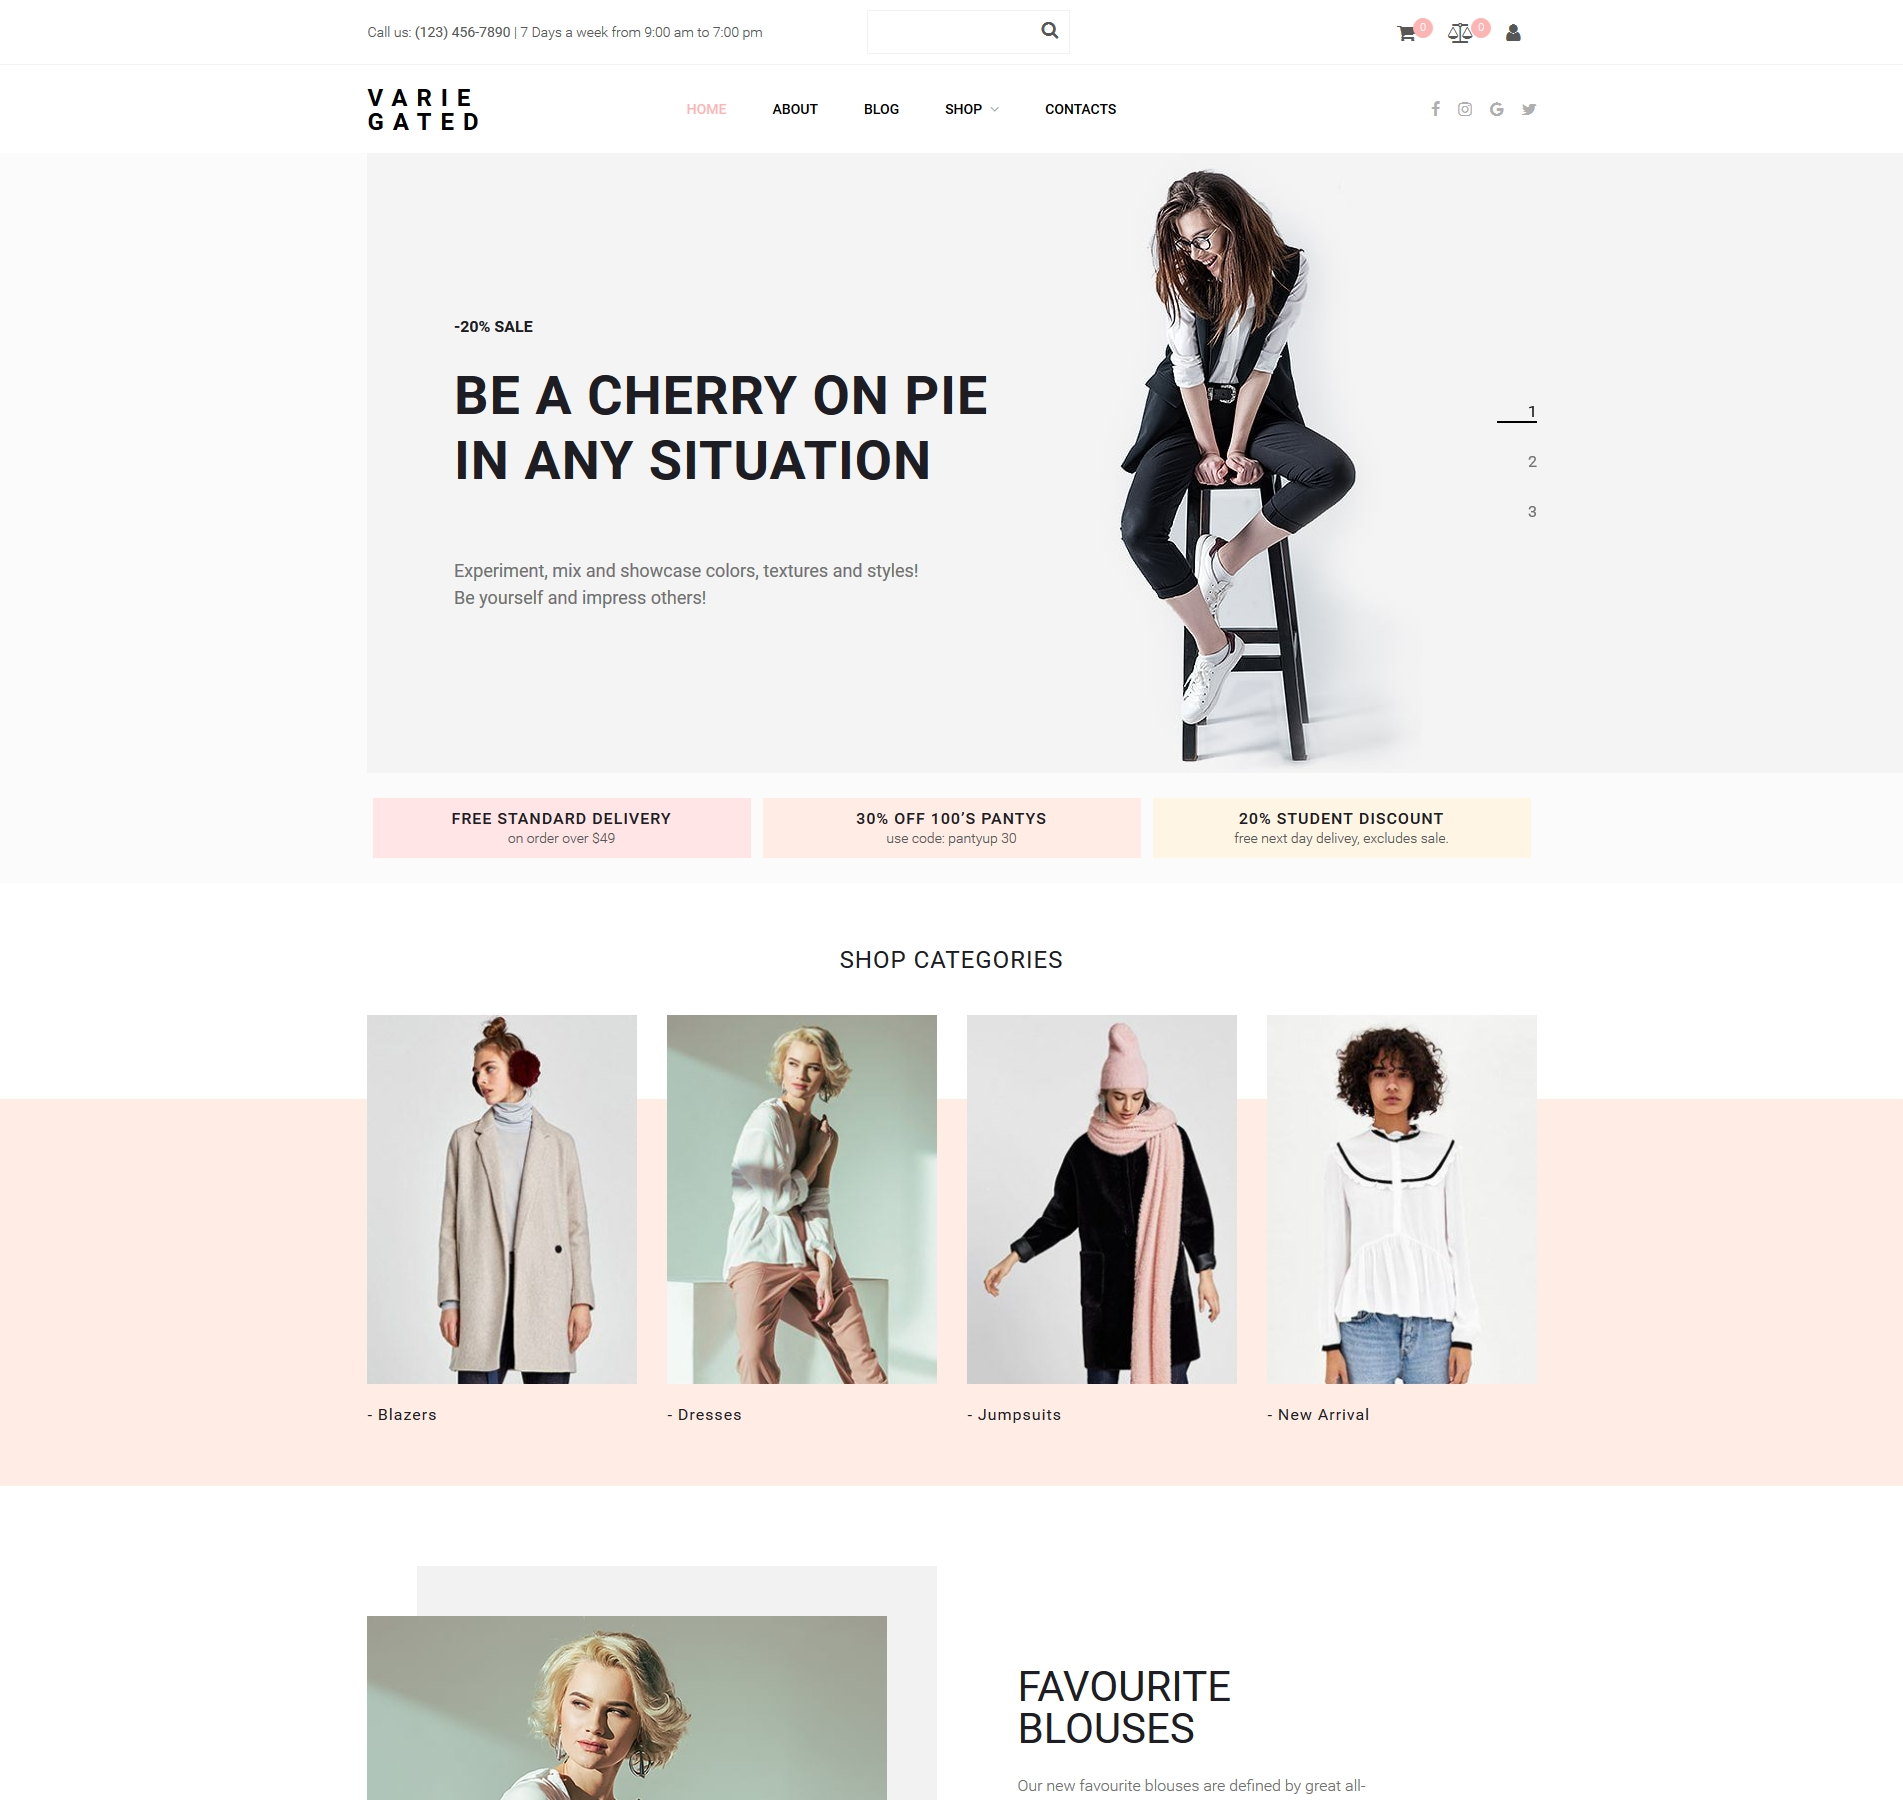 Website Design Template 73783 - fashion look style fashionable brandstore ecommerce luxury shopping sale womens boutique estore estores collection dresses ladies blazers jumpsuits